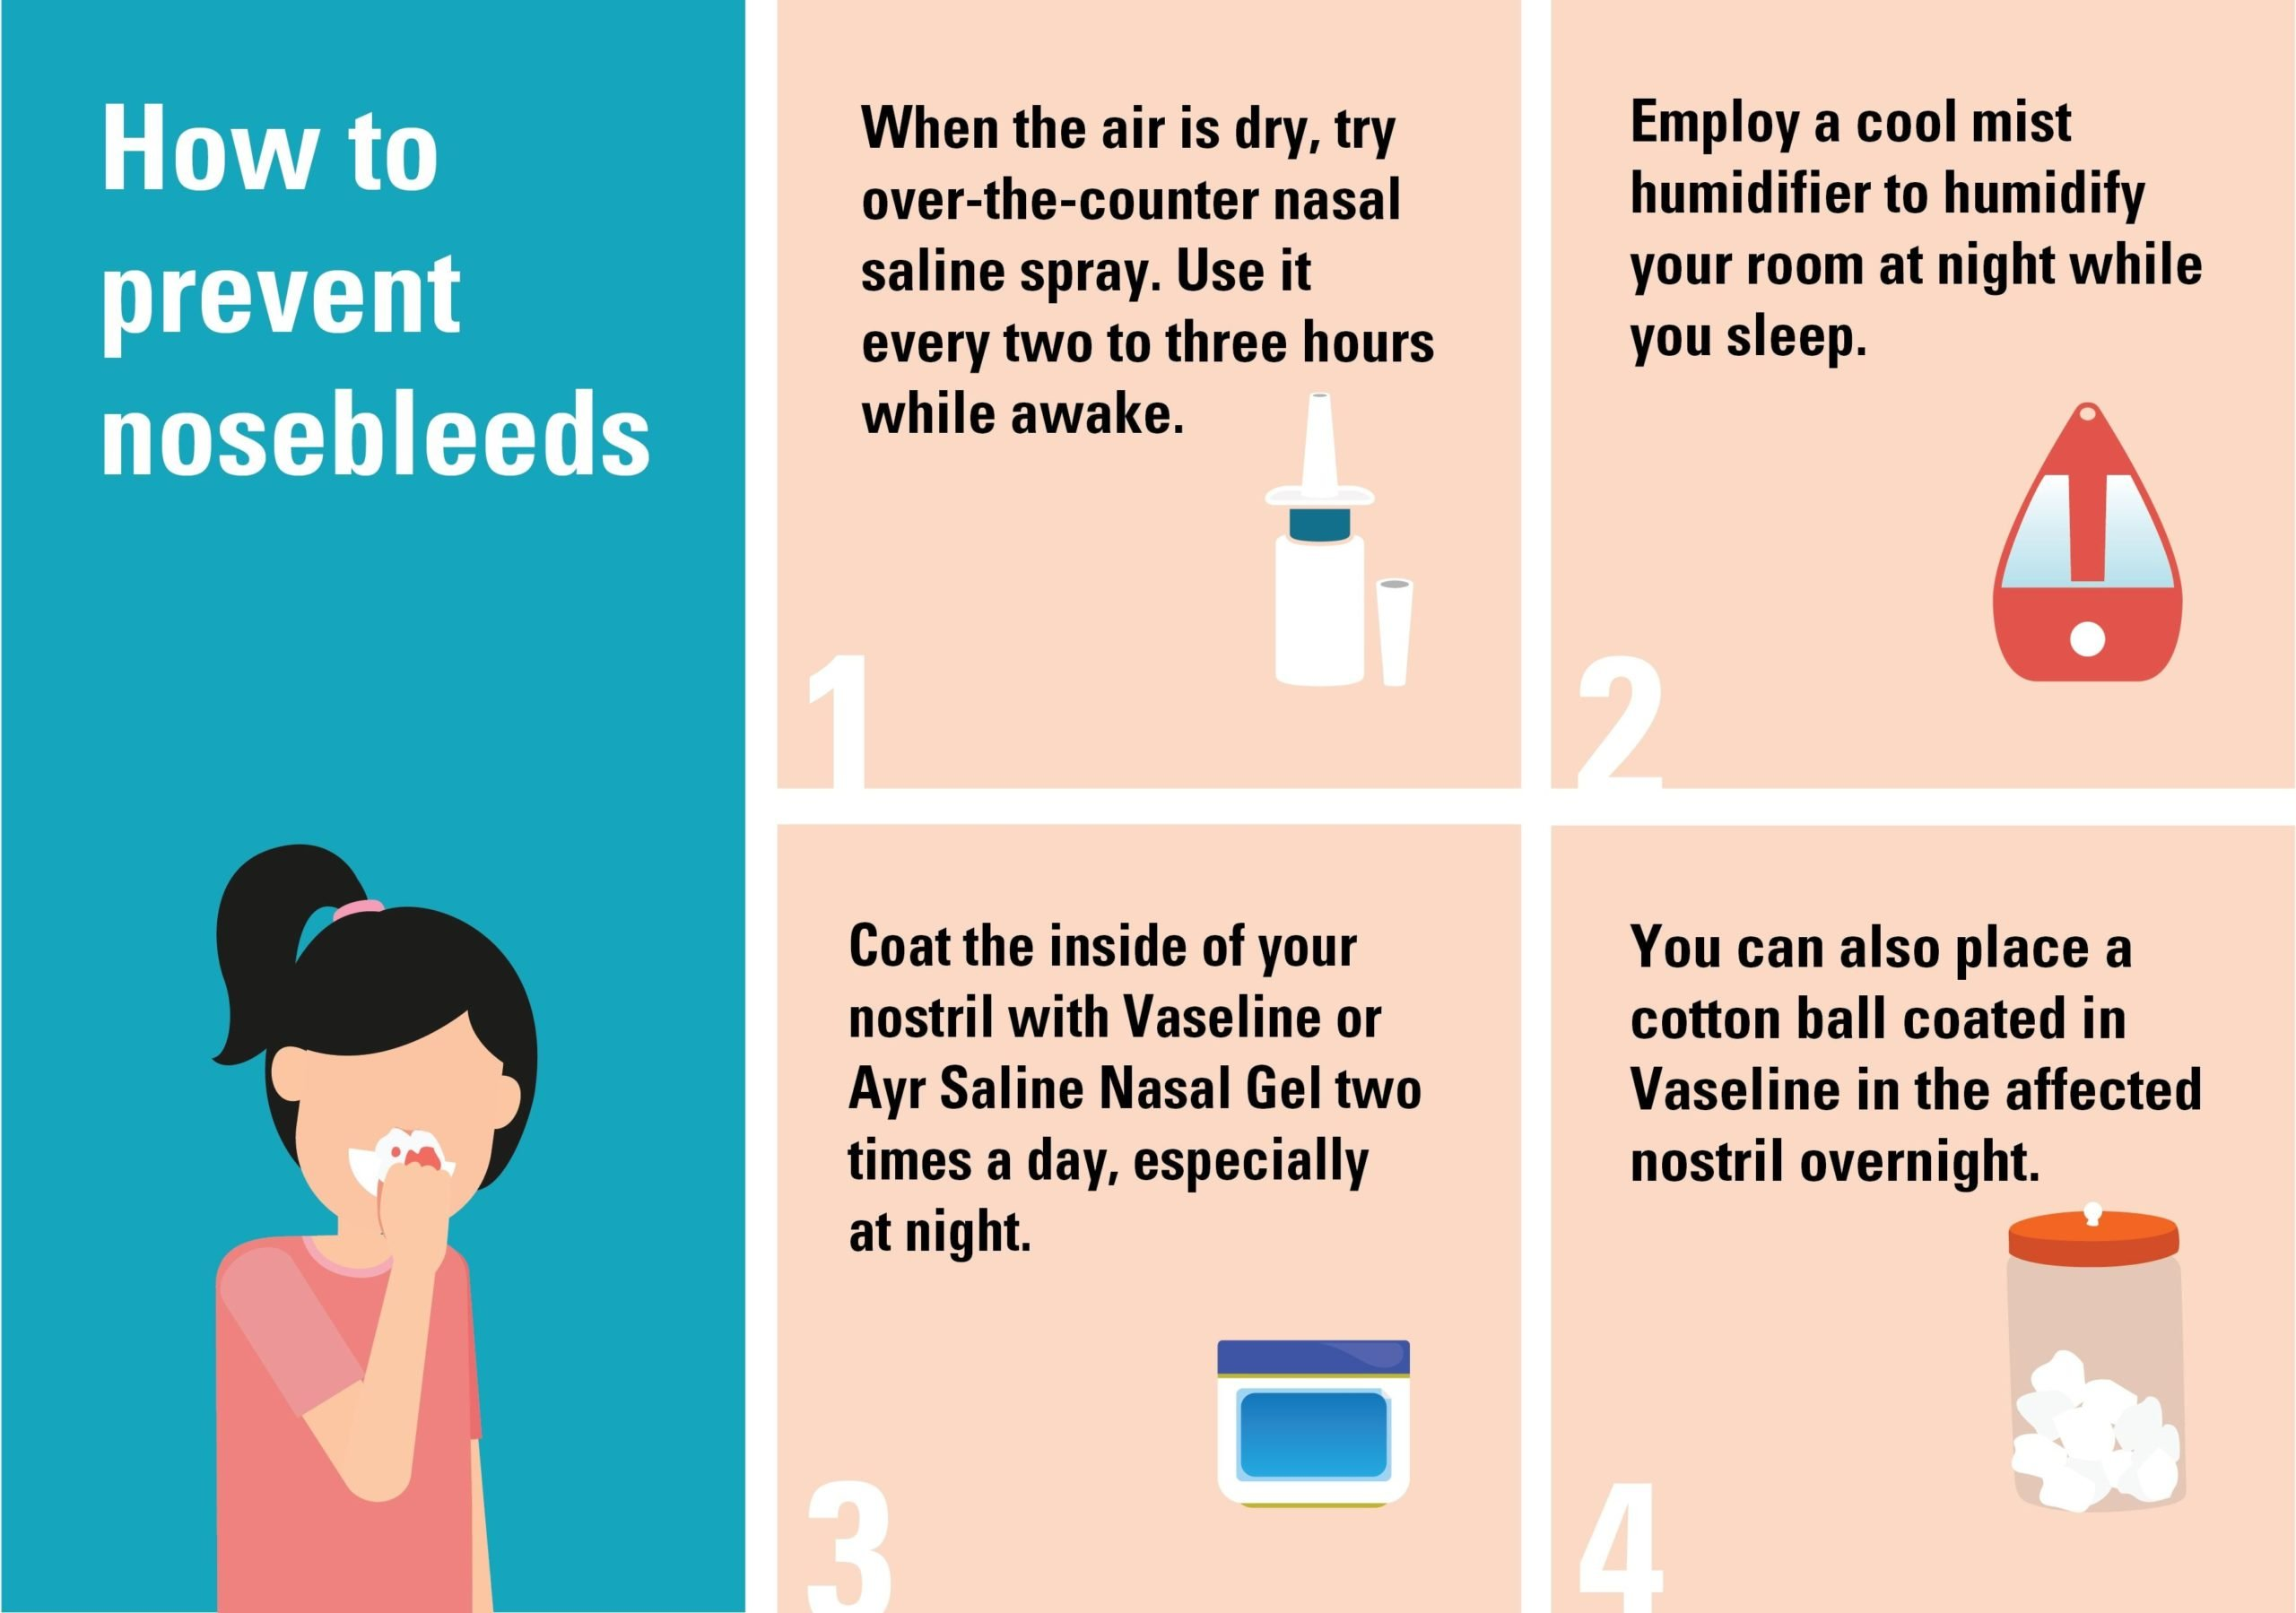 Handling A Bloody Cough Accompanied By A Nosebleed Nose?